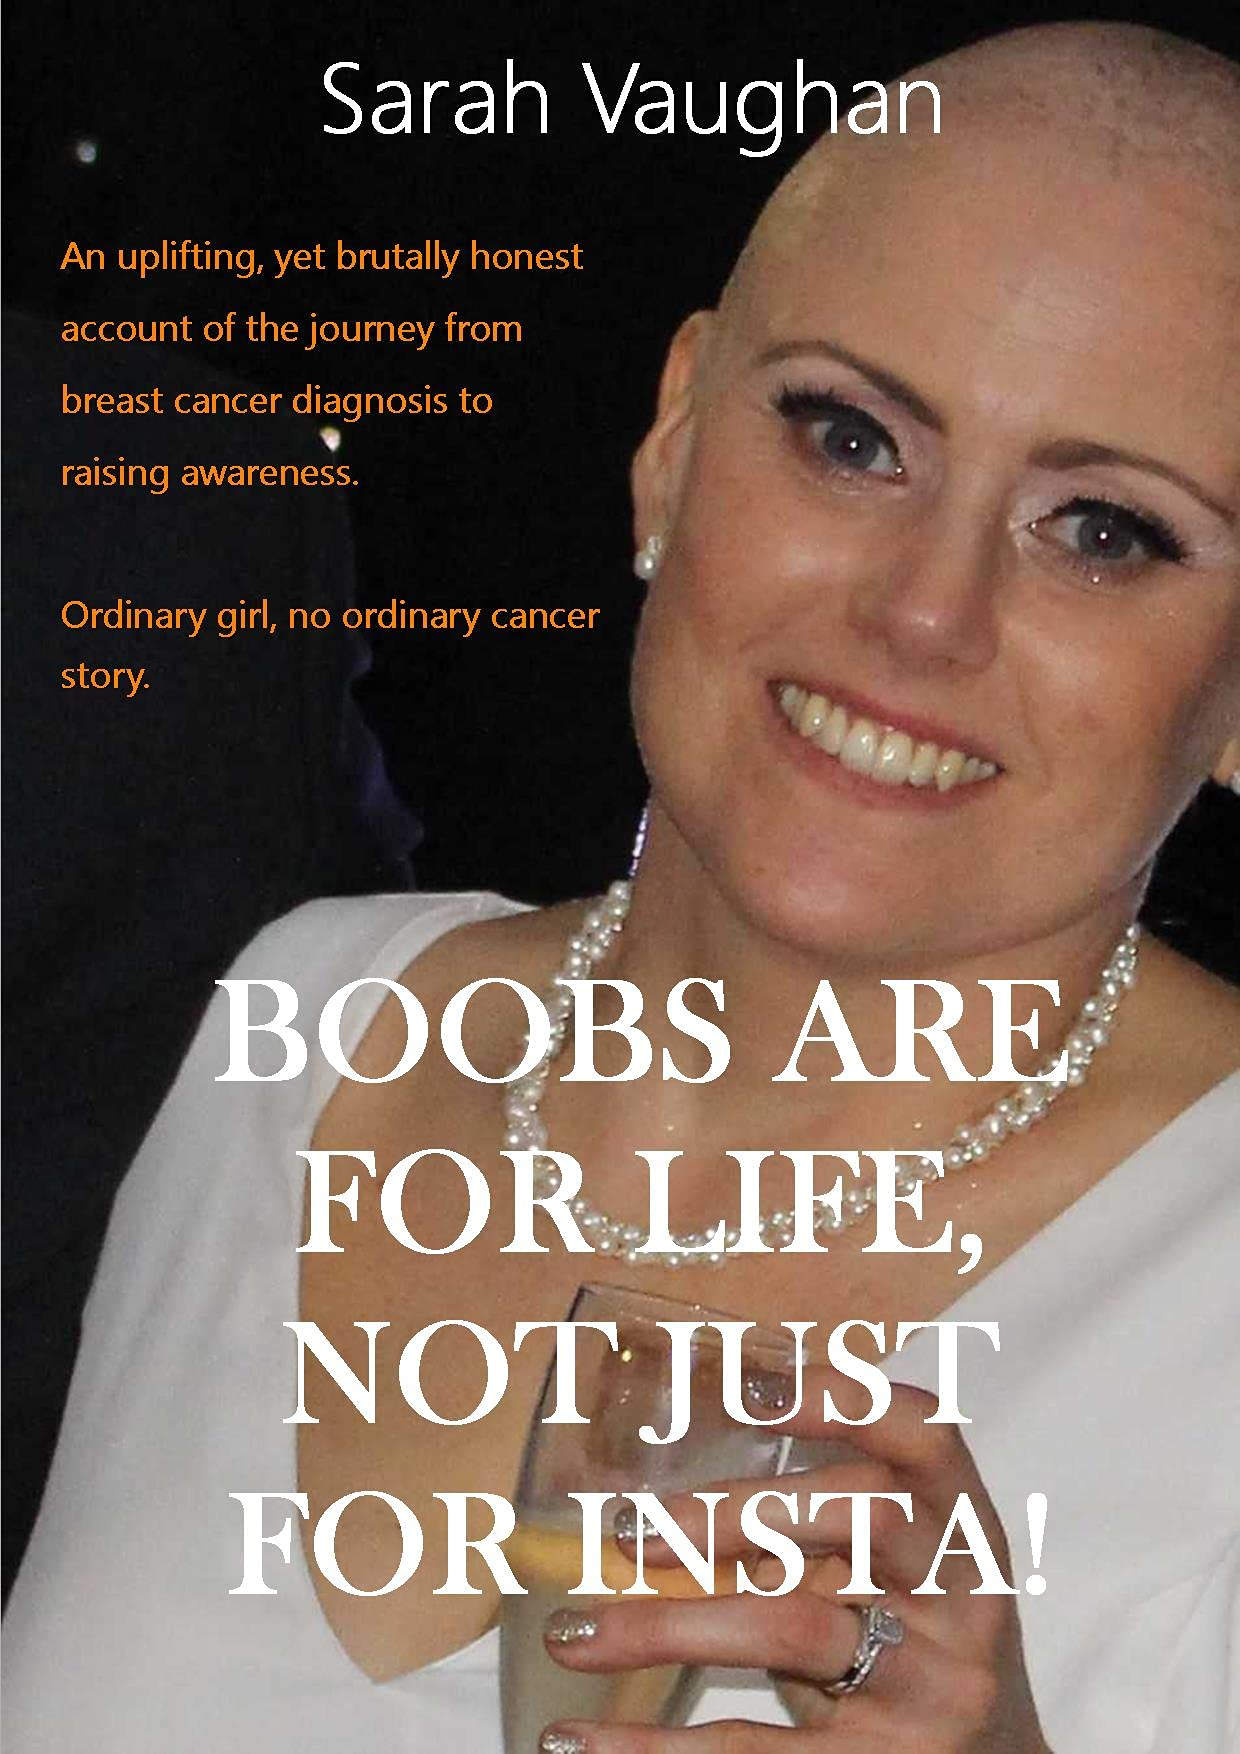 Boobs Are For Life, Not Just For Insta!: Does life pause for Breast cancer? Making you laugh and cry, this brutally honest memoir is uplifting. Ordinary girl, extraordinary story.